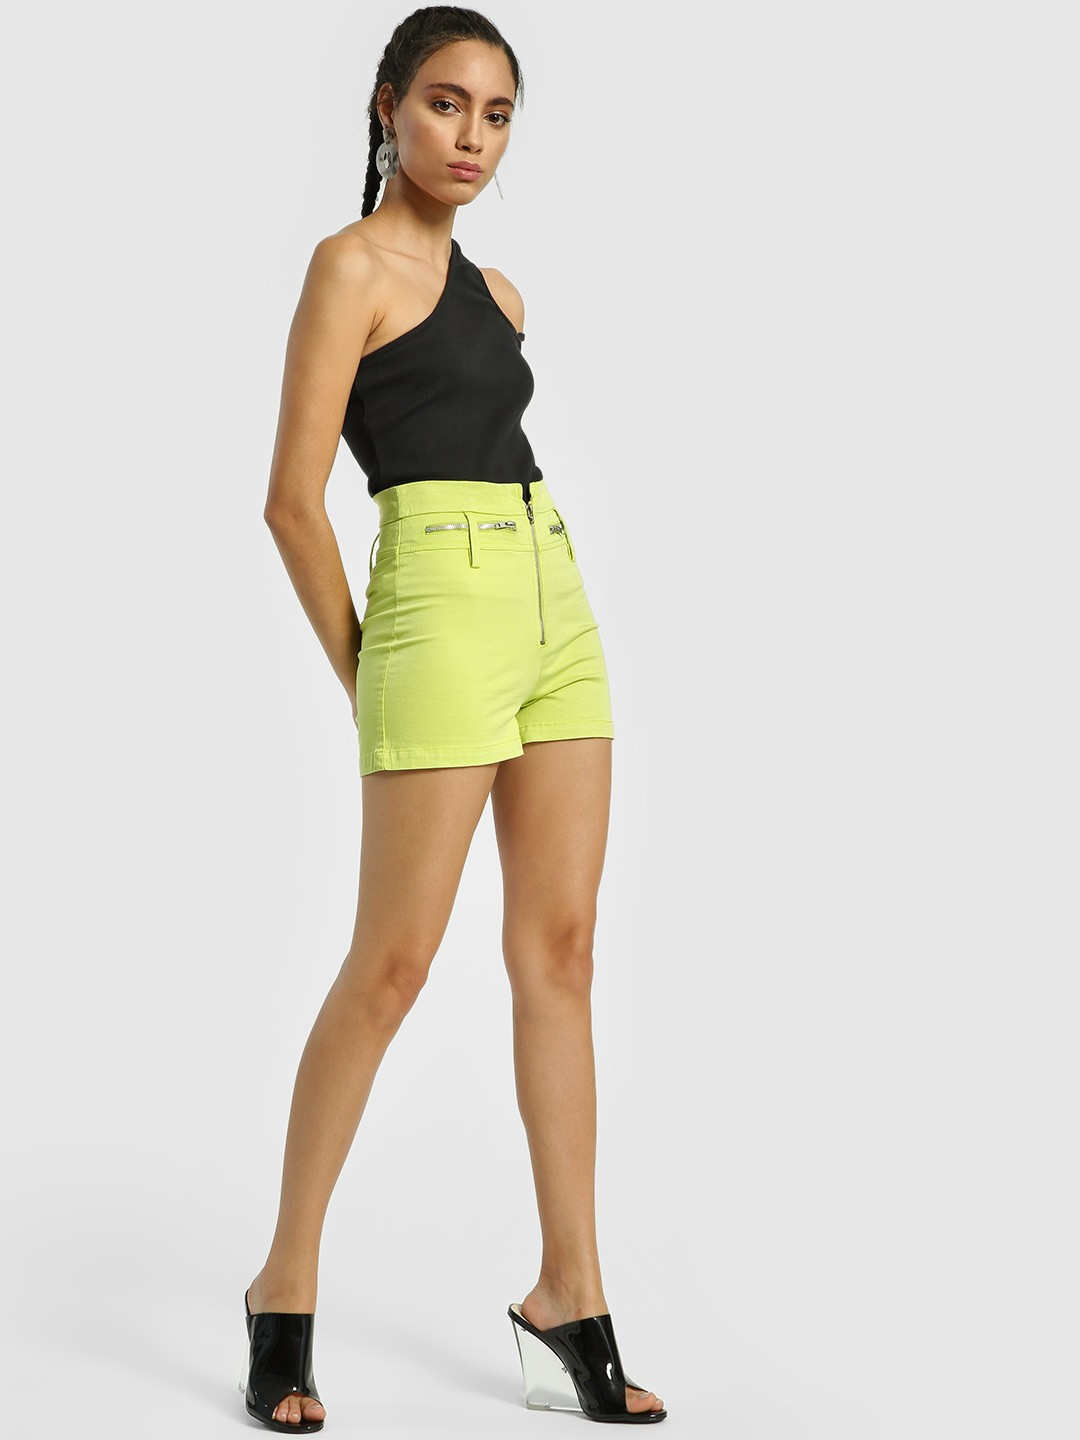 KOOVS Green High Waist Zippered Cargo Shorts 1